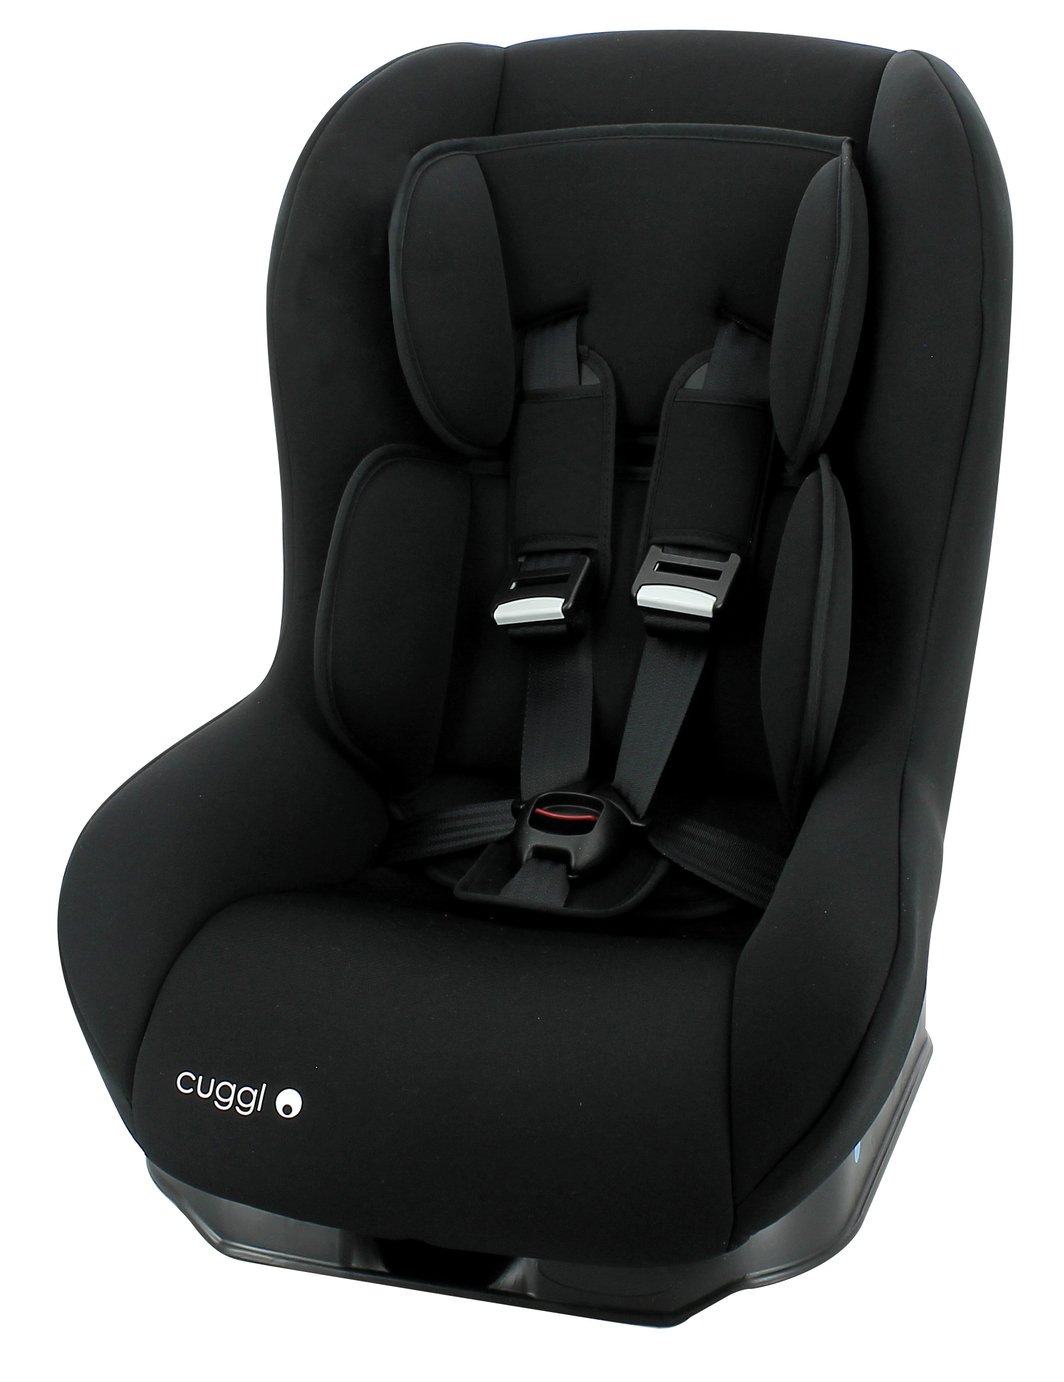 car seats page 4 argos price tracker. Black Bedroom Furniture Sets. Home Design Ideas